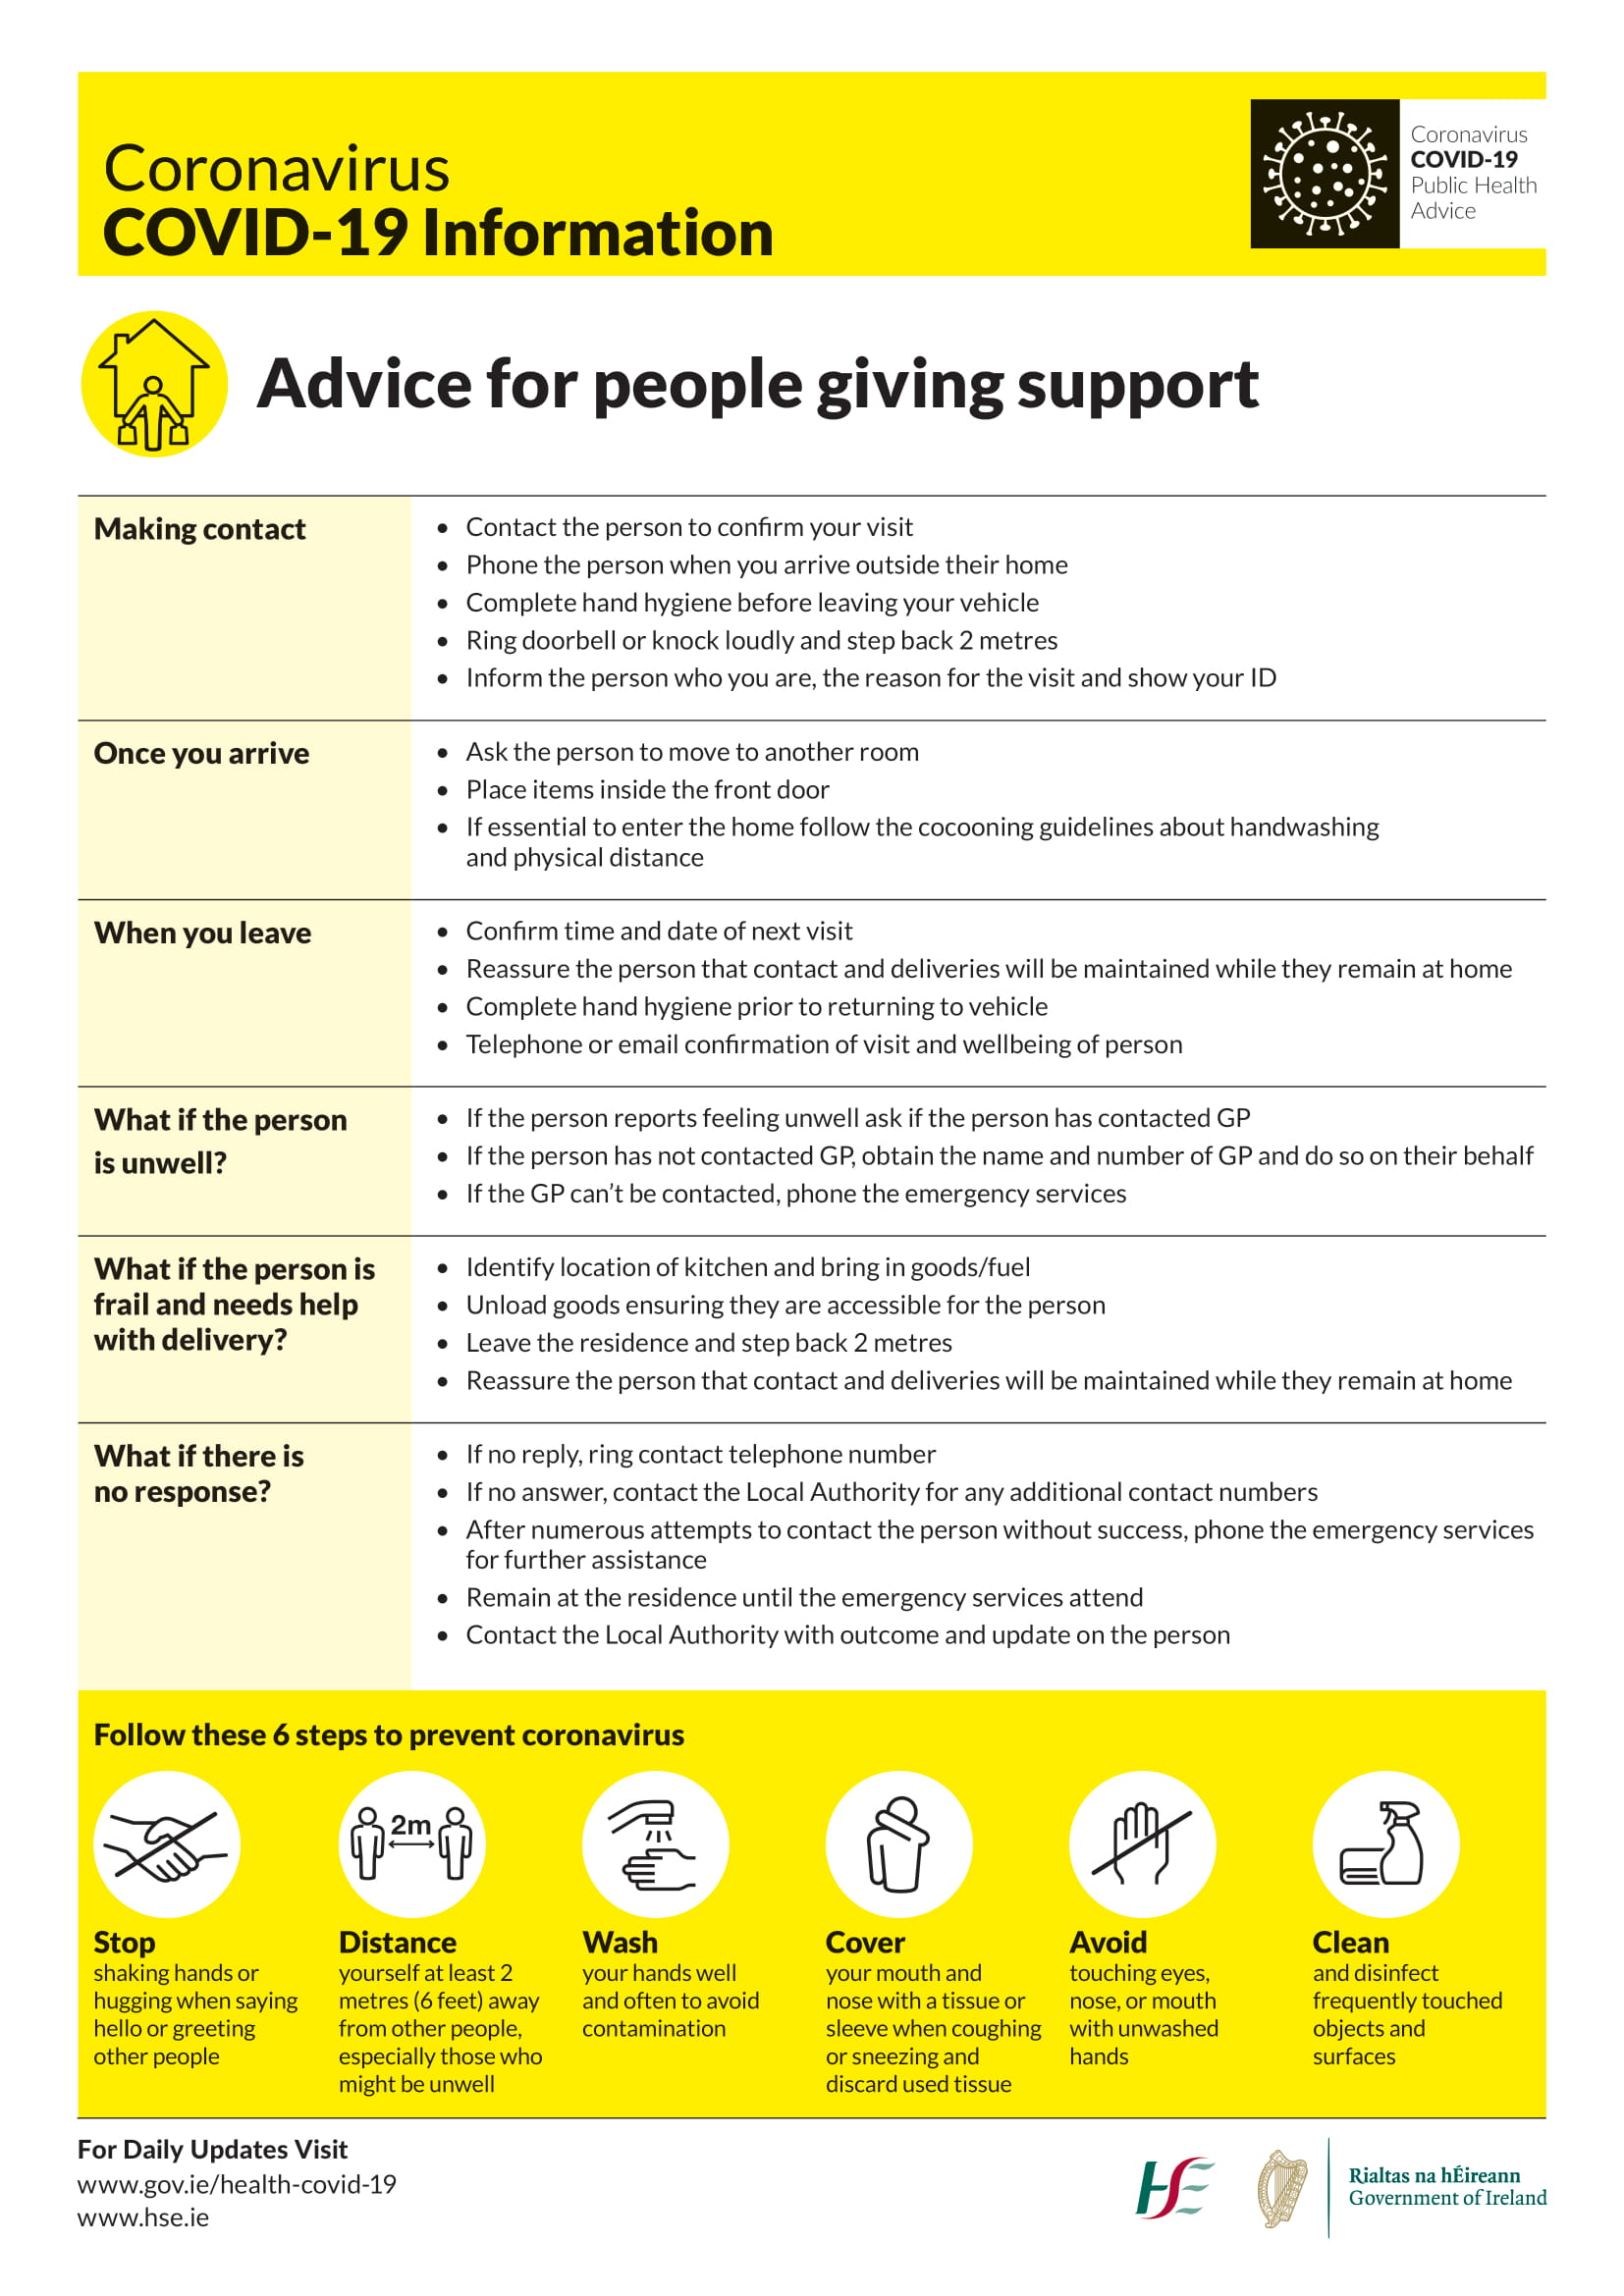 Advice for people giving support during COVID-19